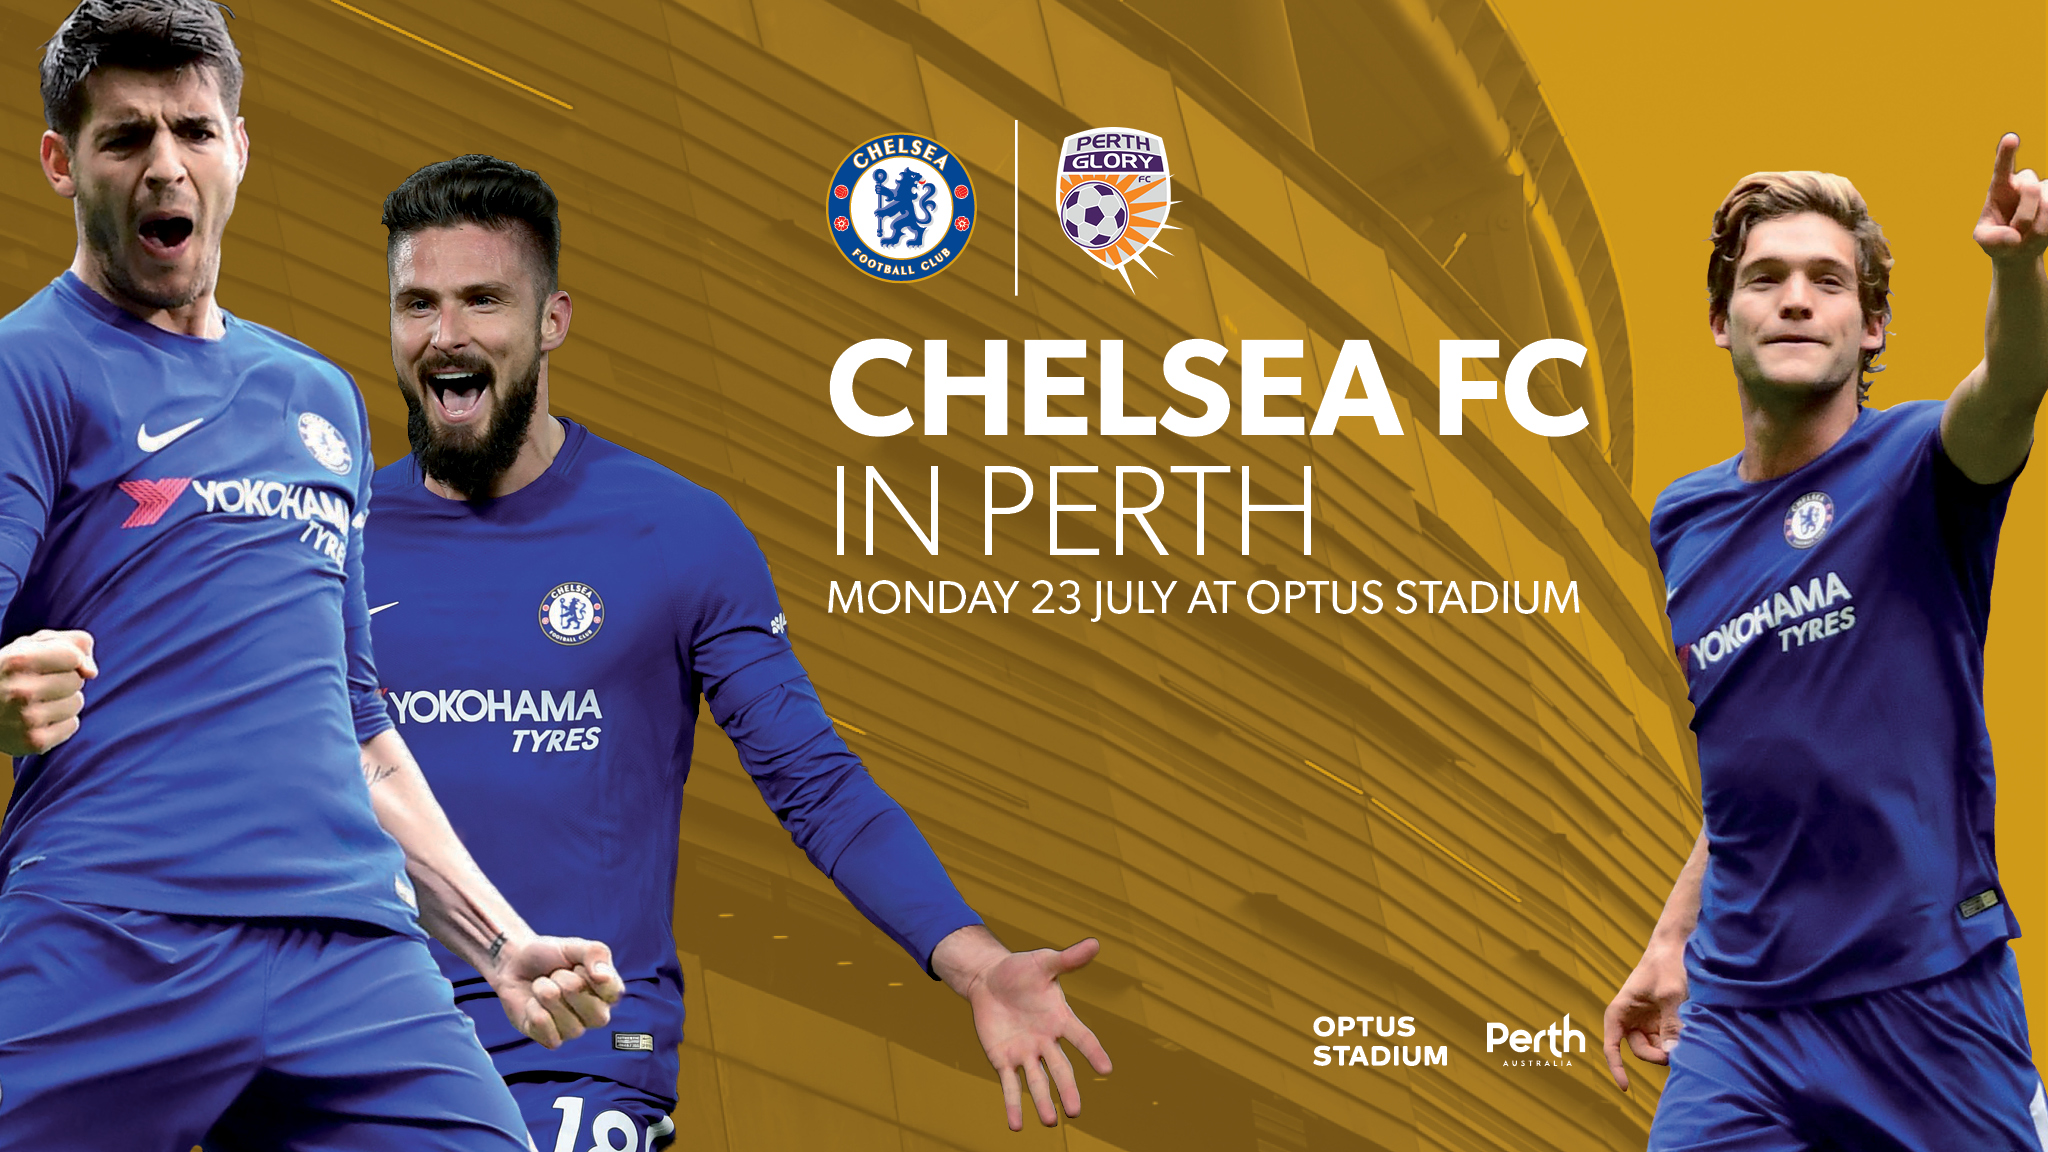 how to get tickets chelsea fc